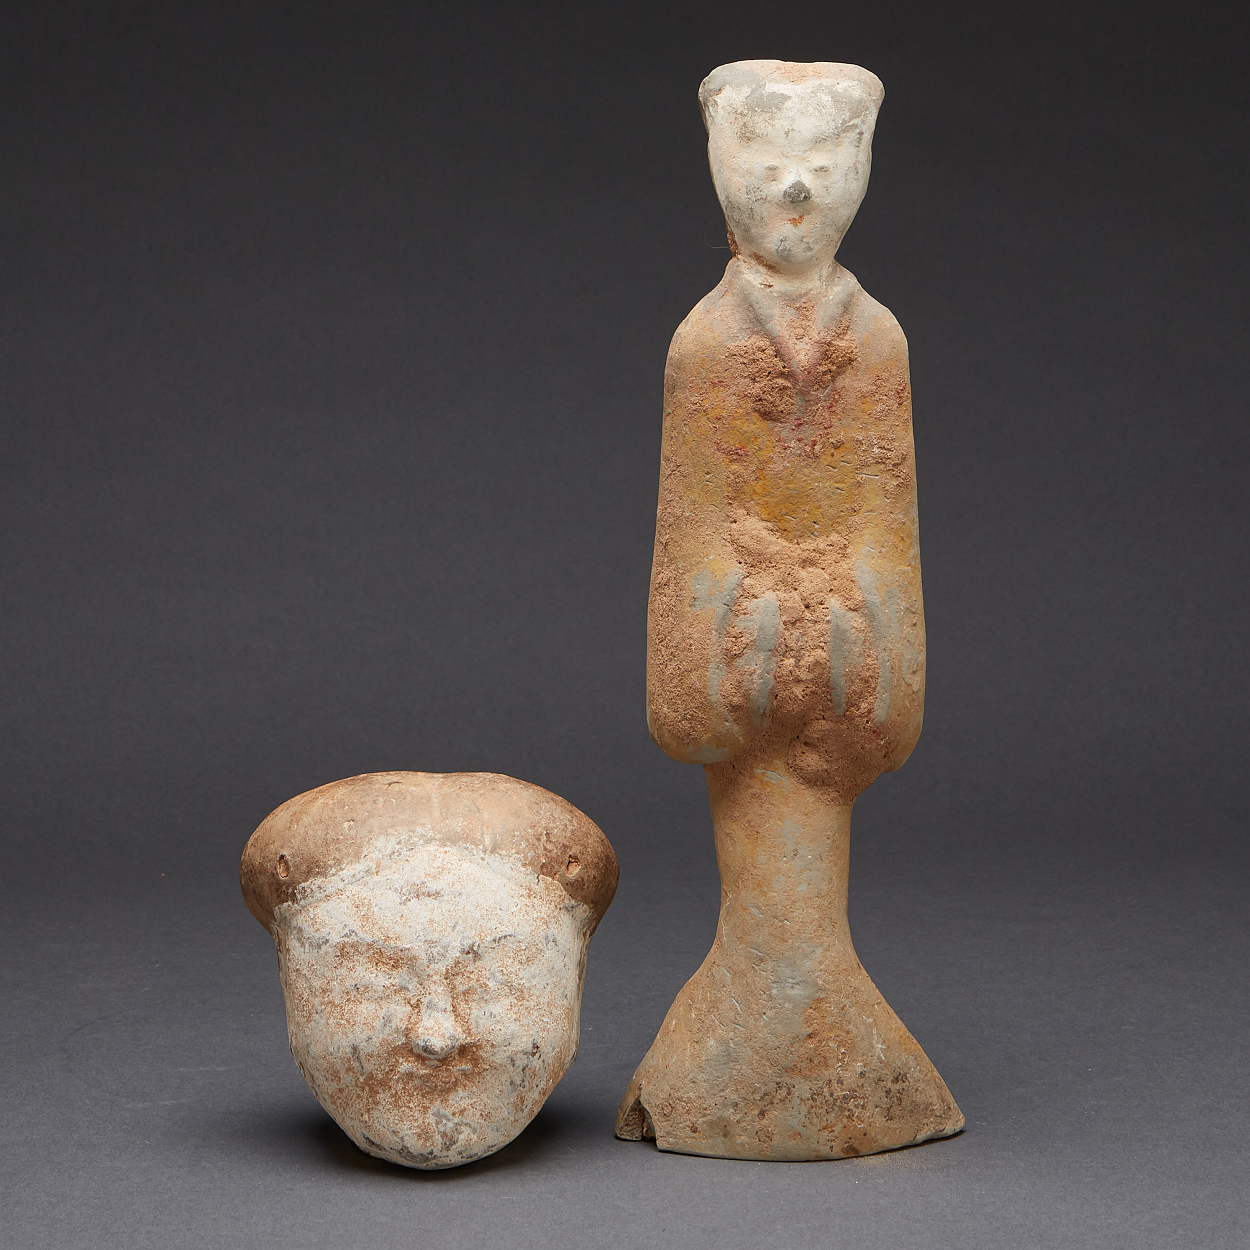 A Pottery Figure and A Head of a Court Lady